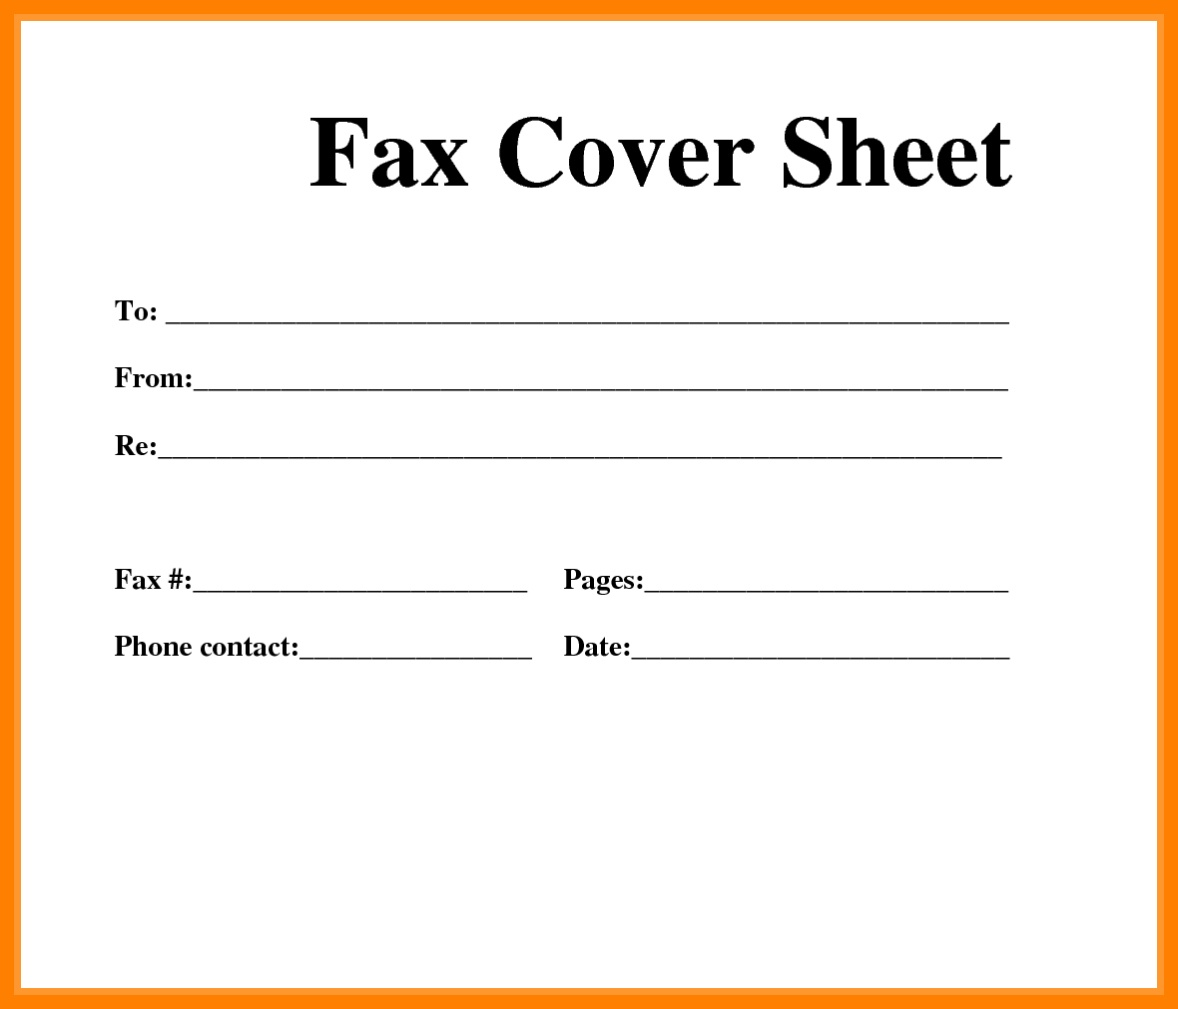 Printable Cover Sheet | Ellipsis - Free Printable Cover Letter For Fax